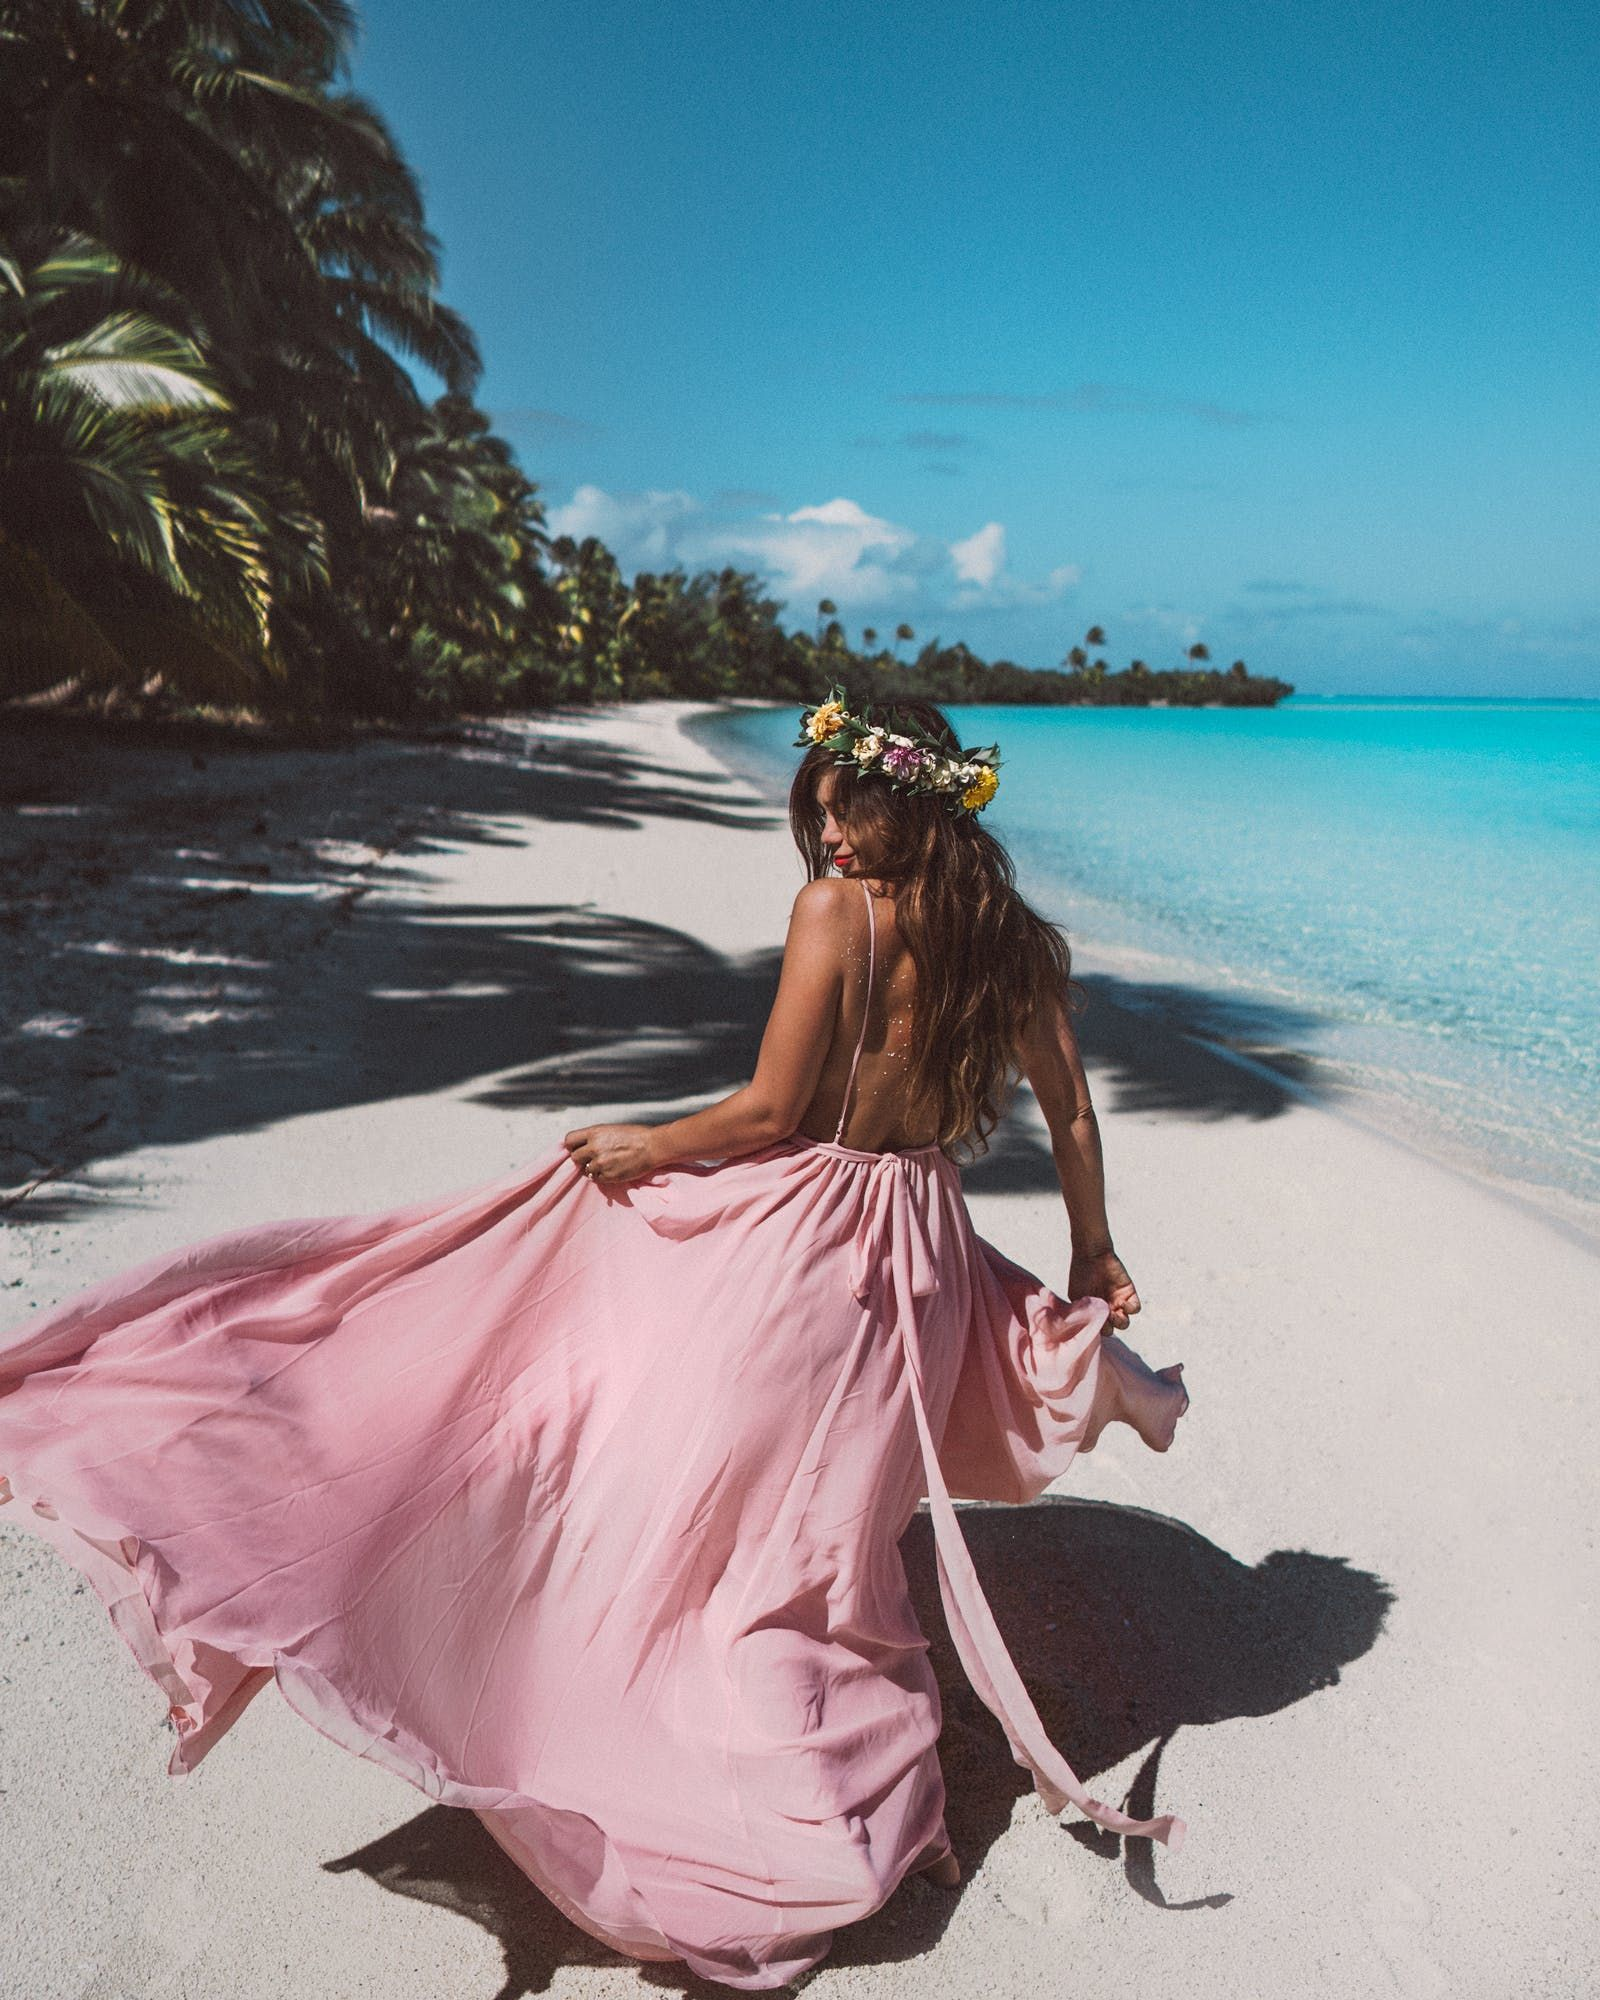 Cook Islands Best Beaches: Style Diaries Cook Islands - Revolve In Paradise